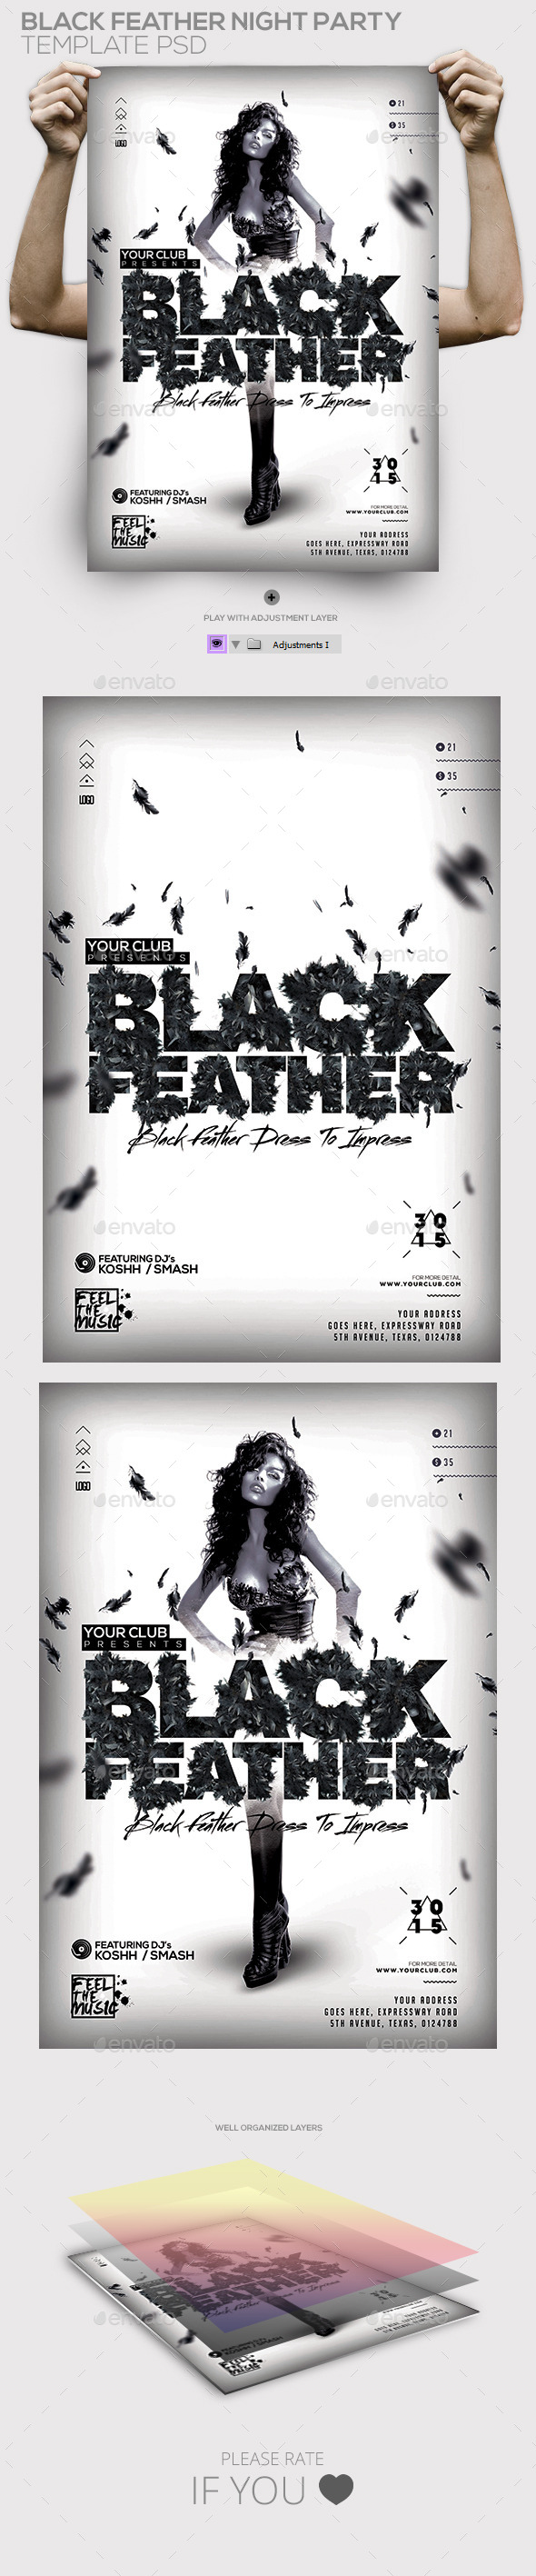 Black Feather Night Party Template - Clubs & Parties Events